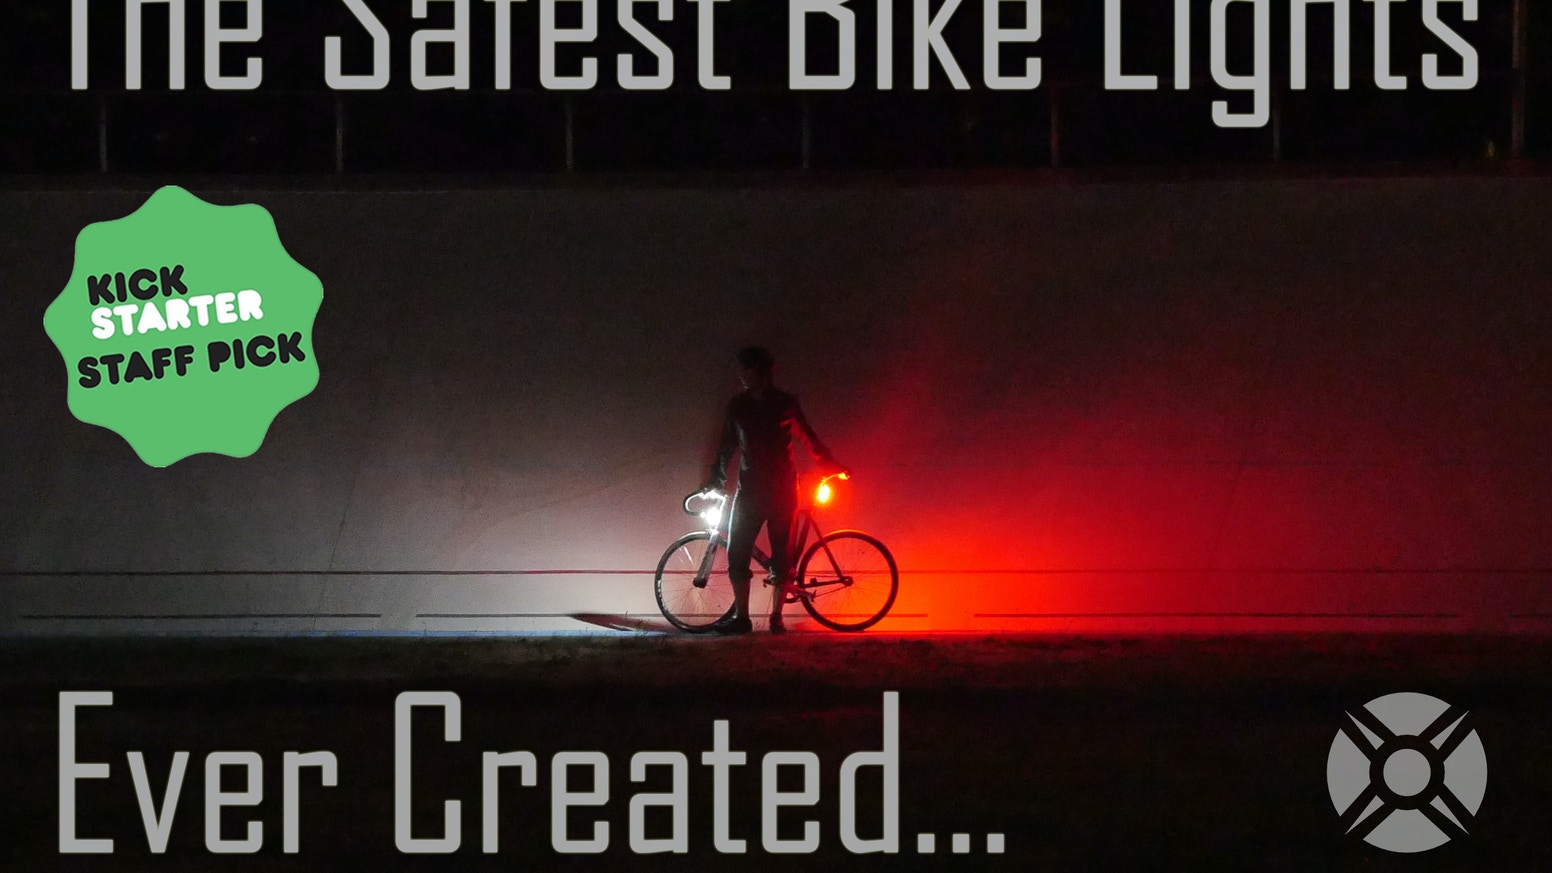 Bicycle Lights featuring unprecedented brightness at 360 degree visibility, USB charging, magnetic mounting, and 100% waterproofing